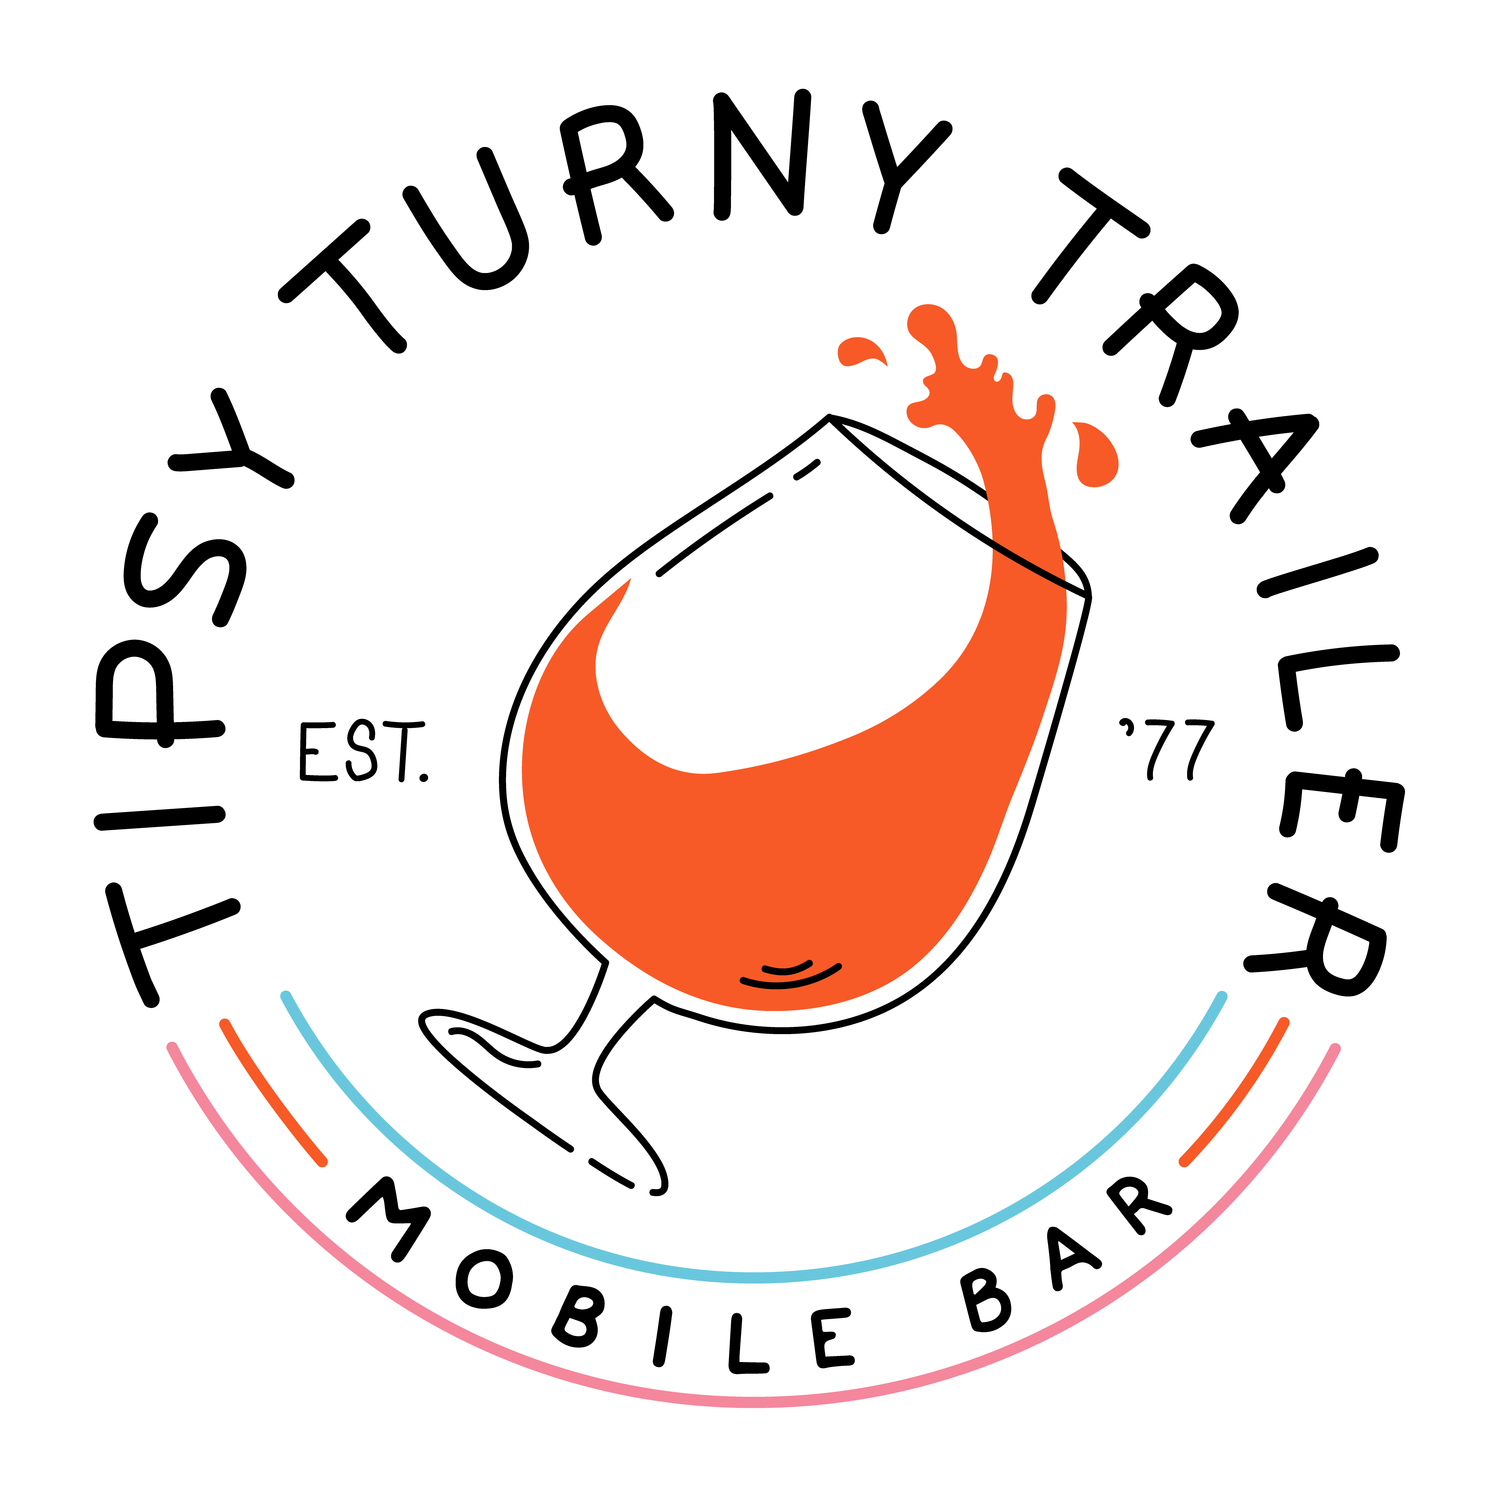 Tipsy Turny Trailer